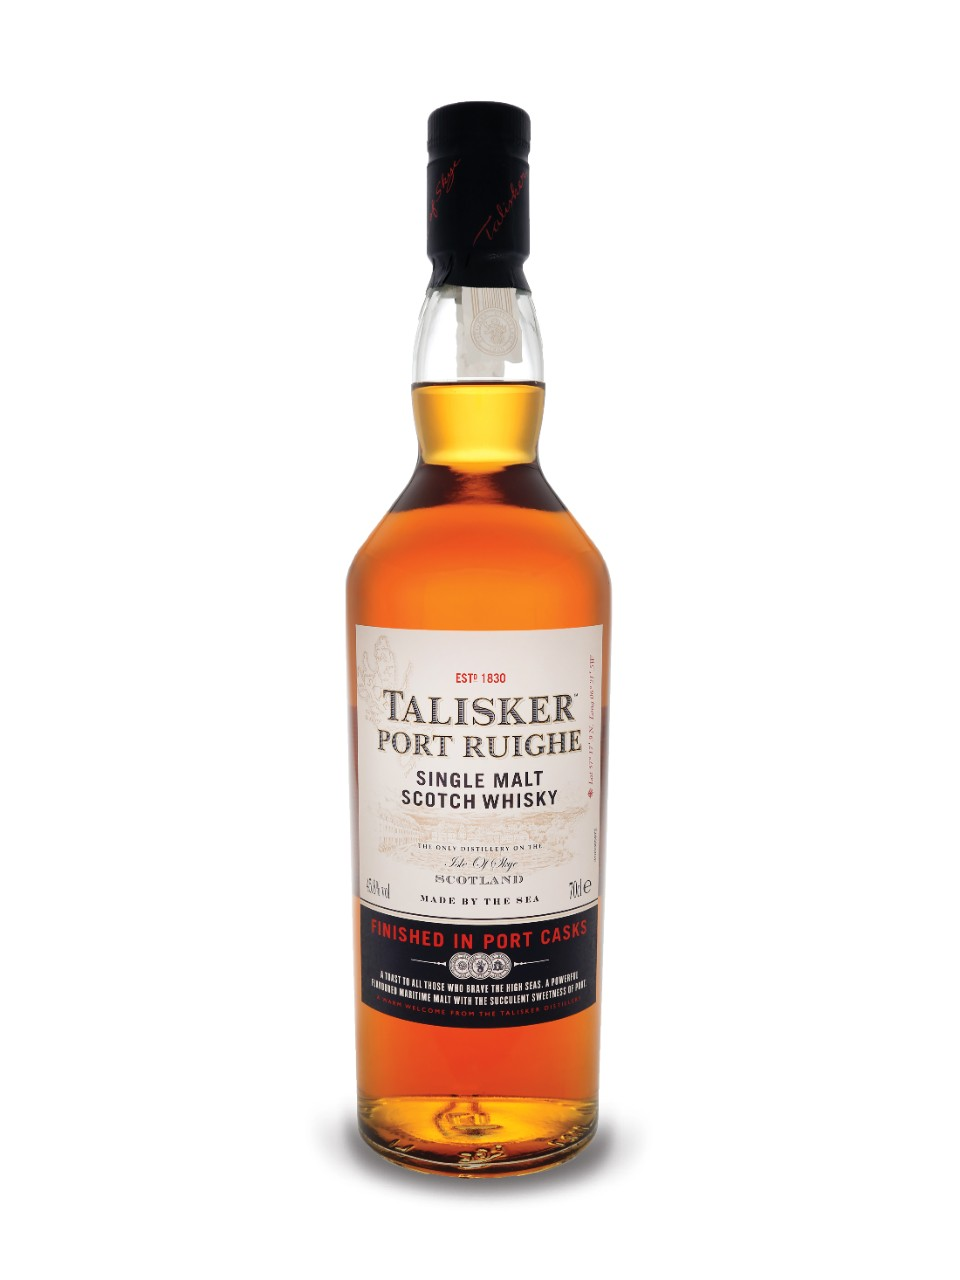 Talisker Port Ruighe from LCBO